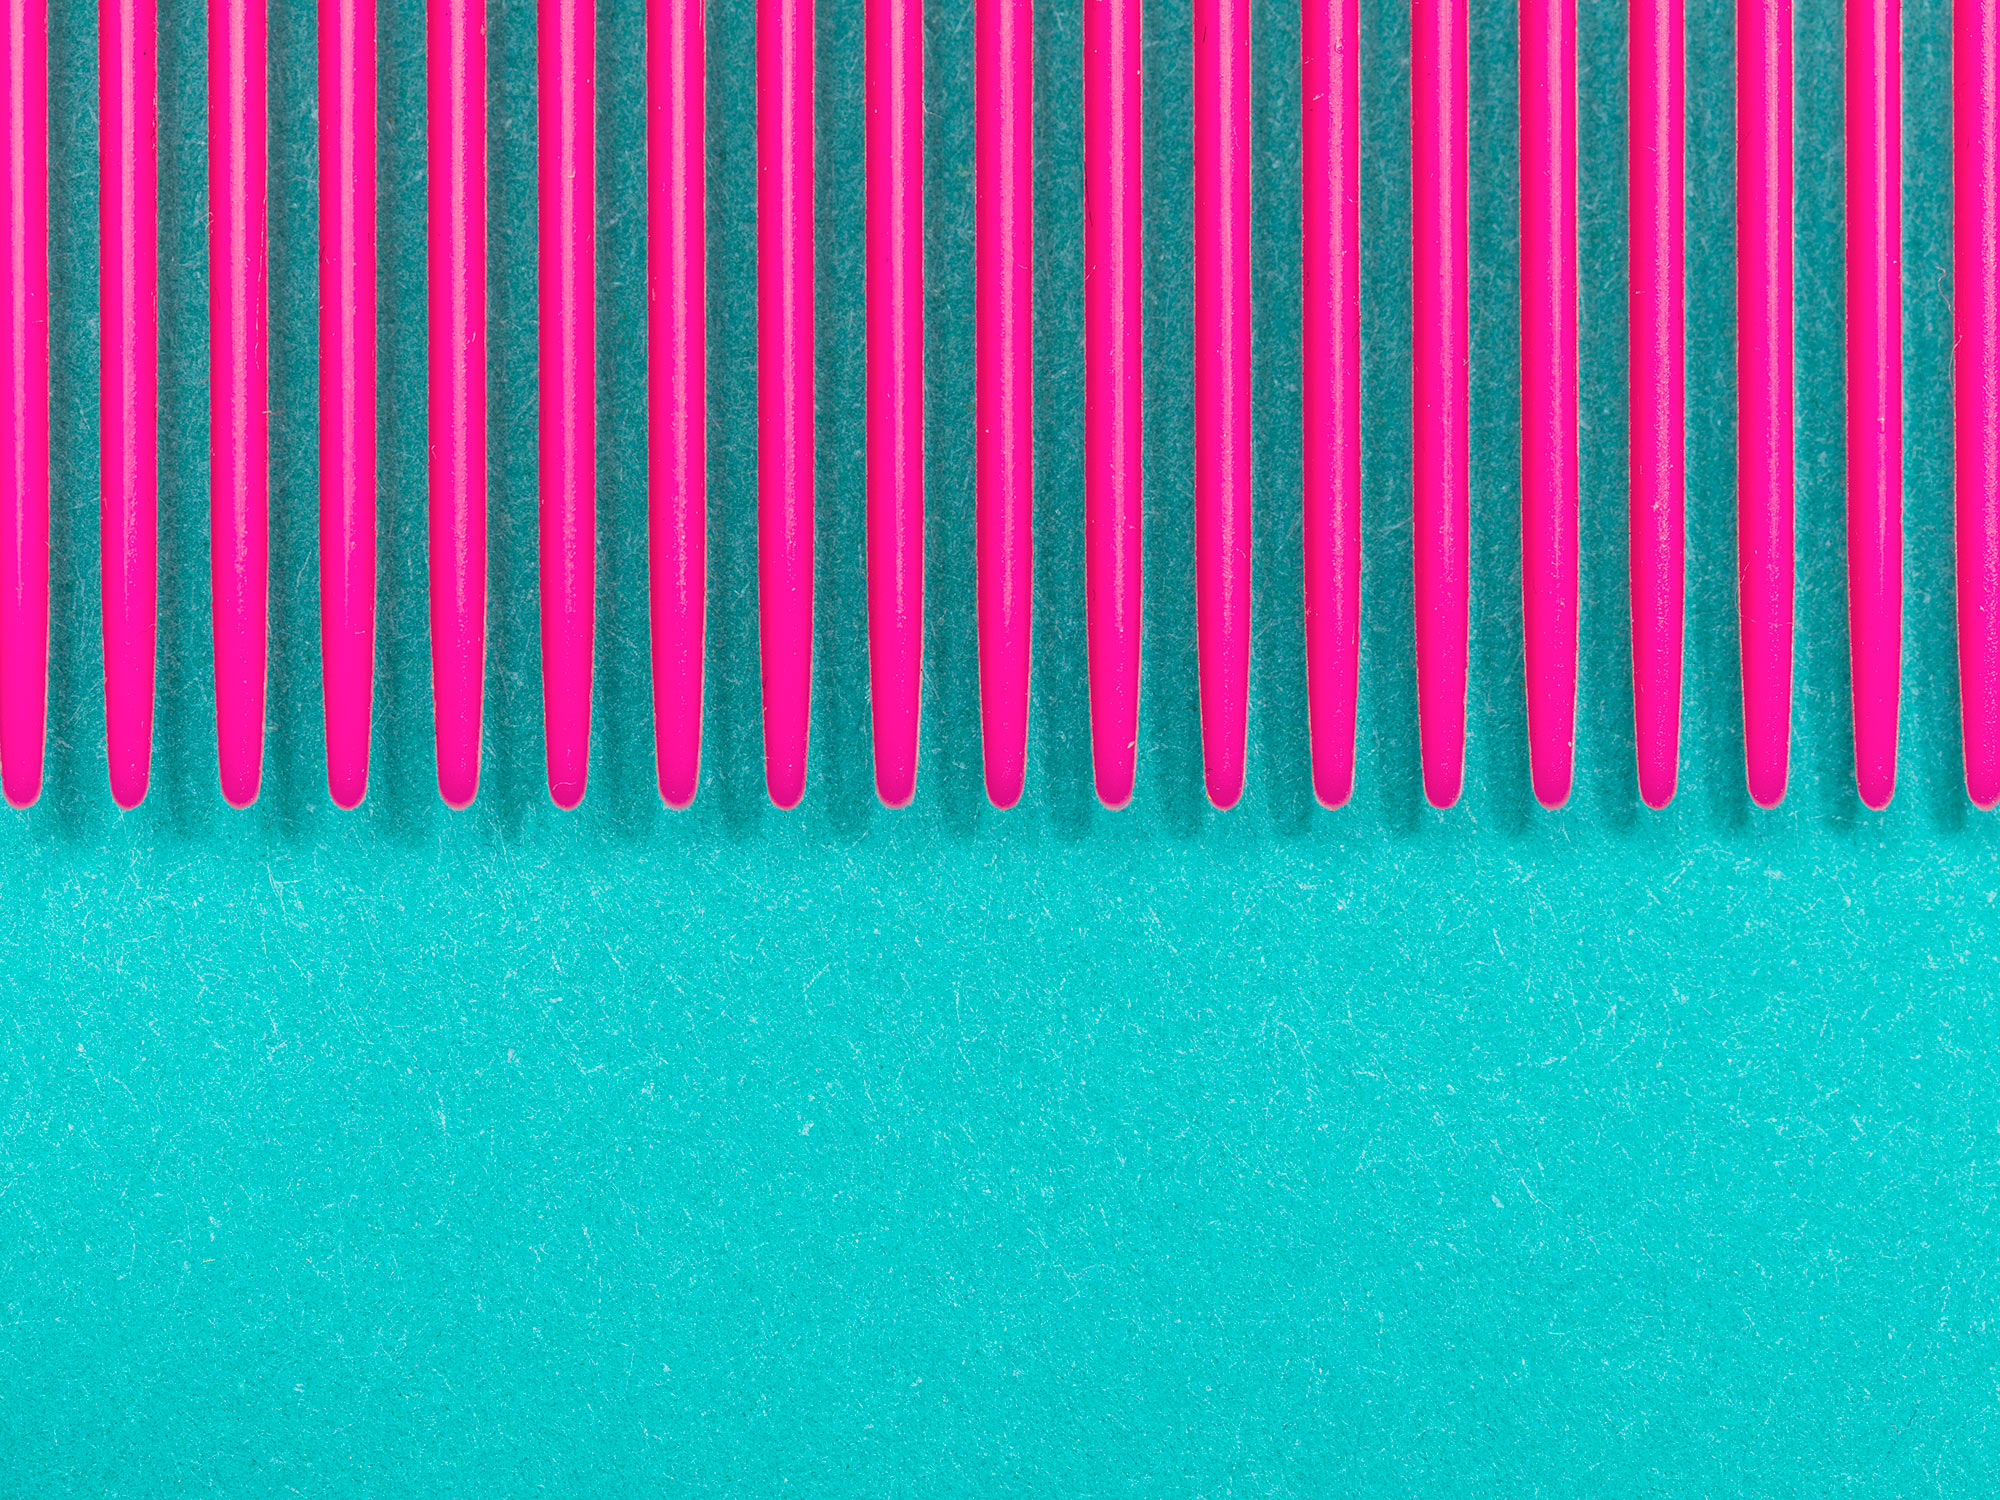 Detail photograph of a pink comb on teal paper, photographed by commercial photographer Todd Spoth.